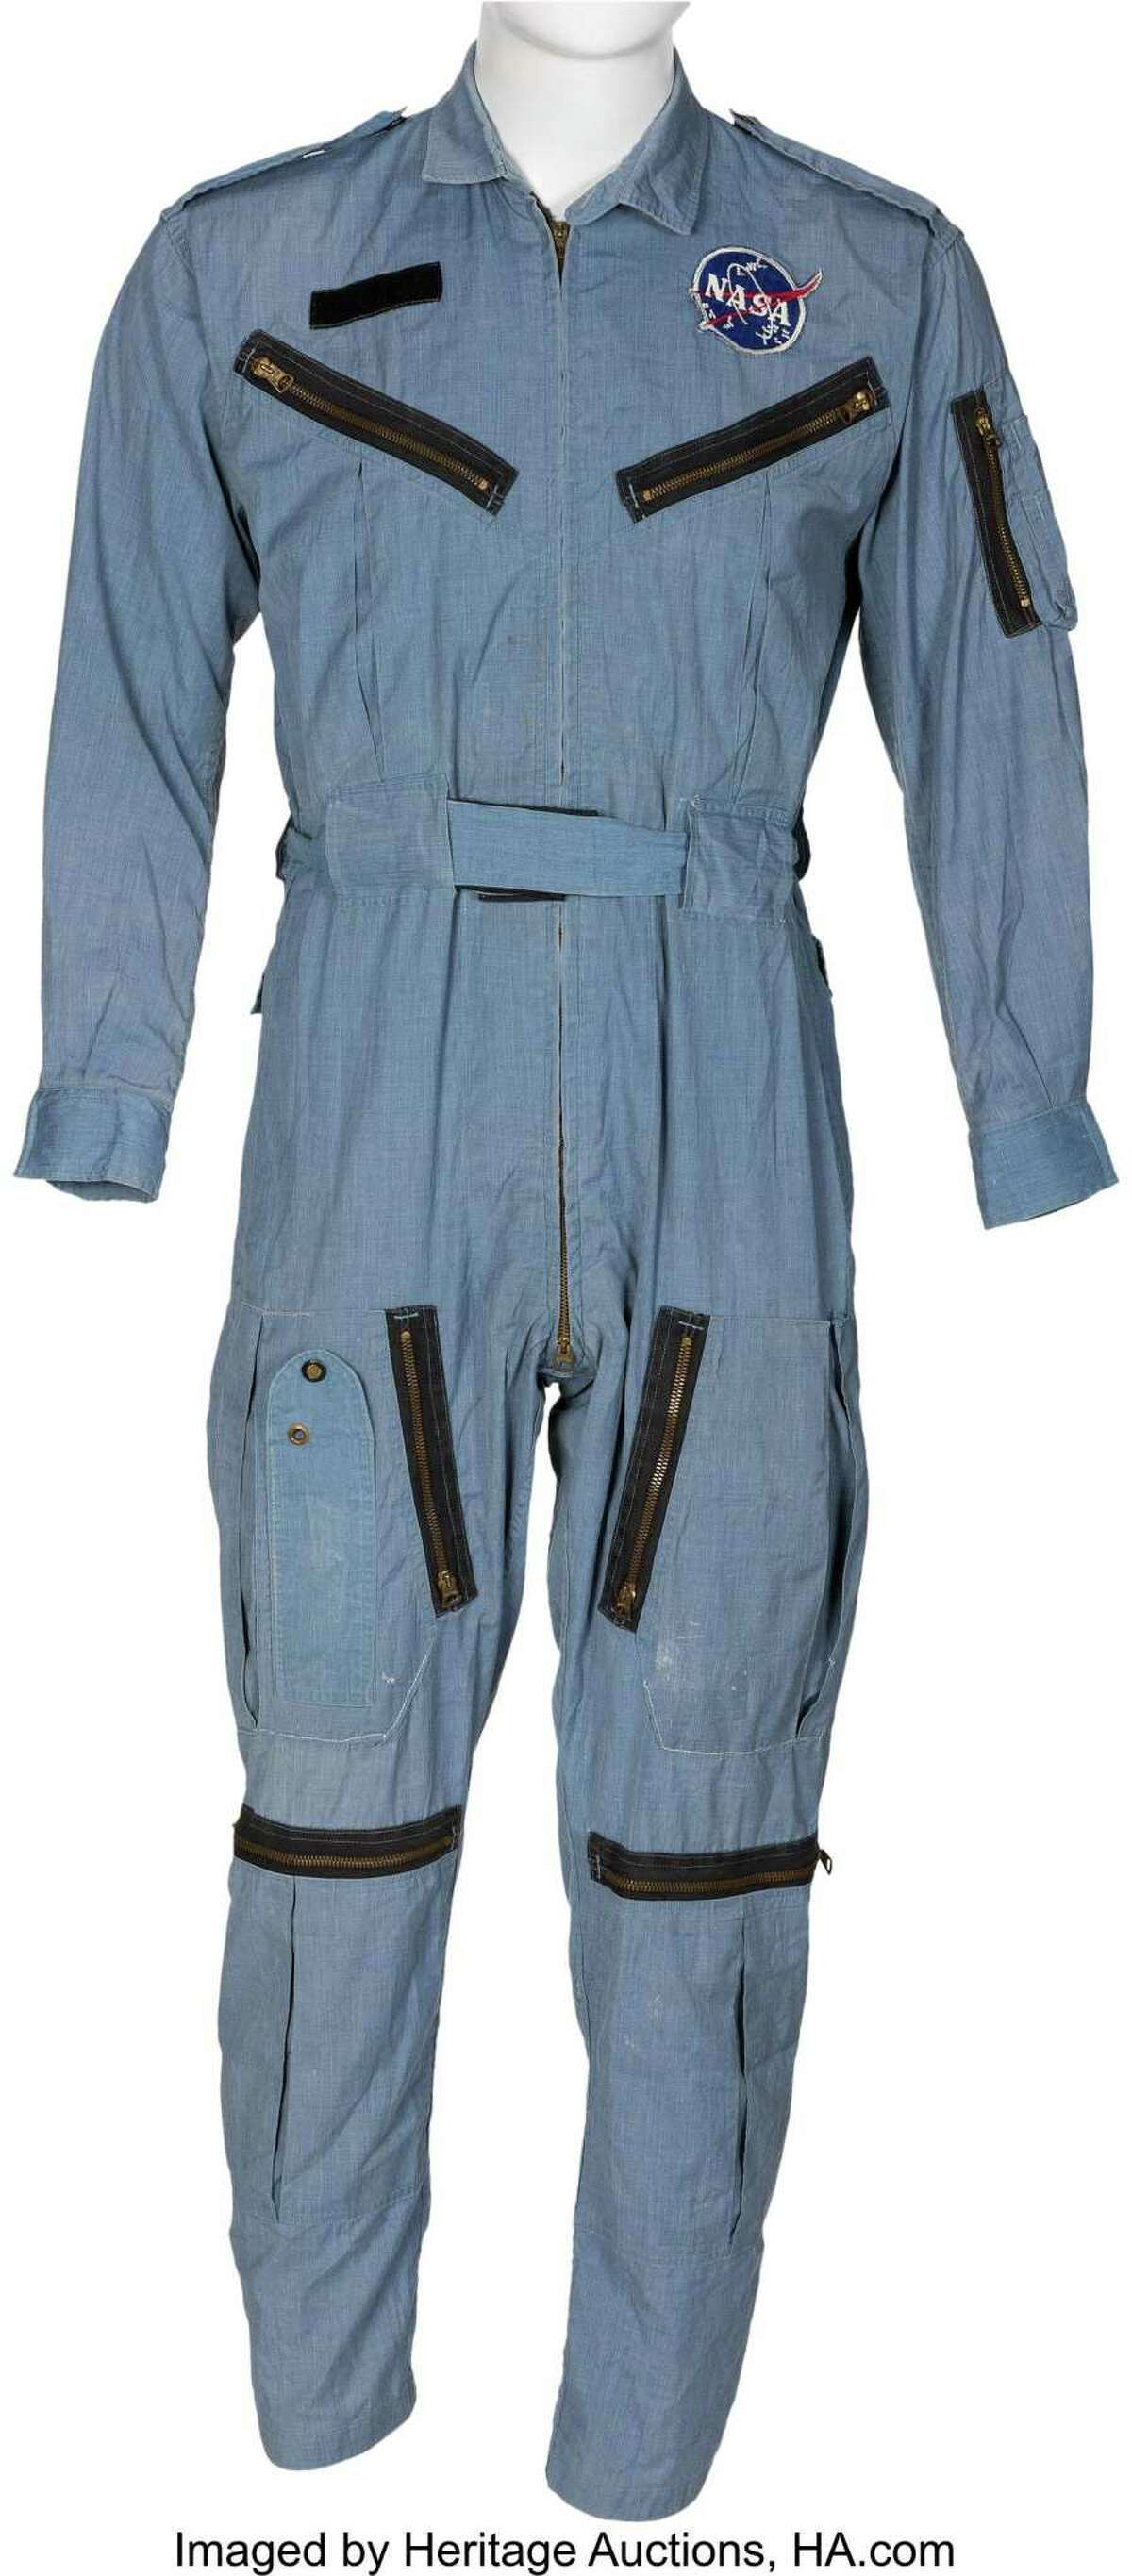 """A light blue cotton one-piece jumpsuit with an embroidered NASA """"meatball"""" vector patch at the left breast shows an empty Velcro strip at right for affixing a nametag. This suit was owned and worn by NASA astronaut Neil Armstrong, the first man on the moon, during the Gemini program, and was sold at auction recently by Dallas-based Heritage Auctions. Velcro was used widely by NASA but was not invented by the space agency."""